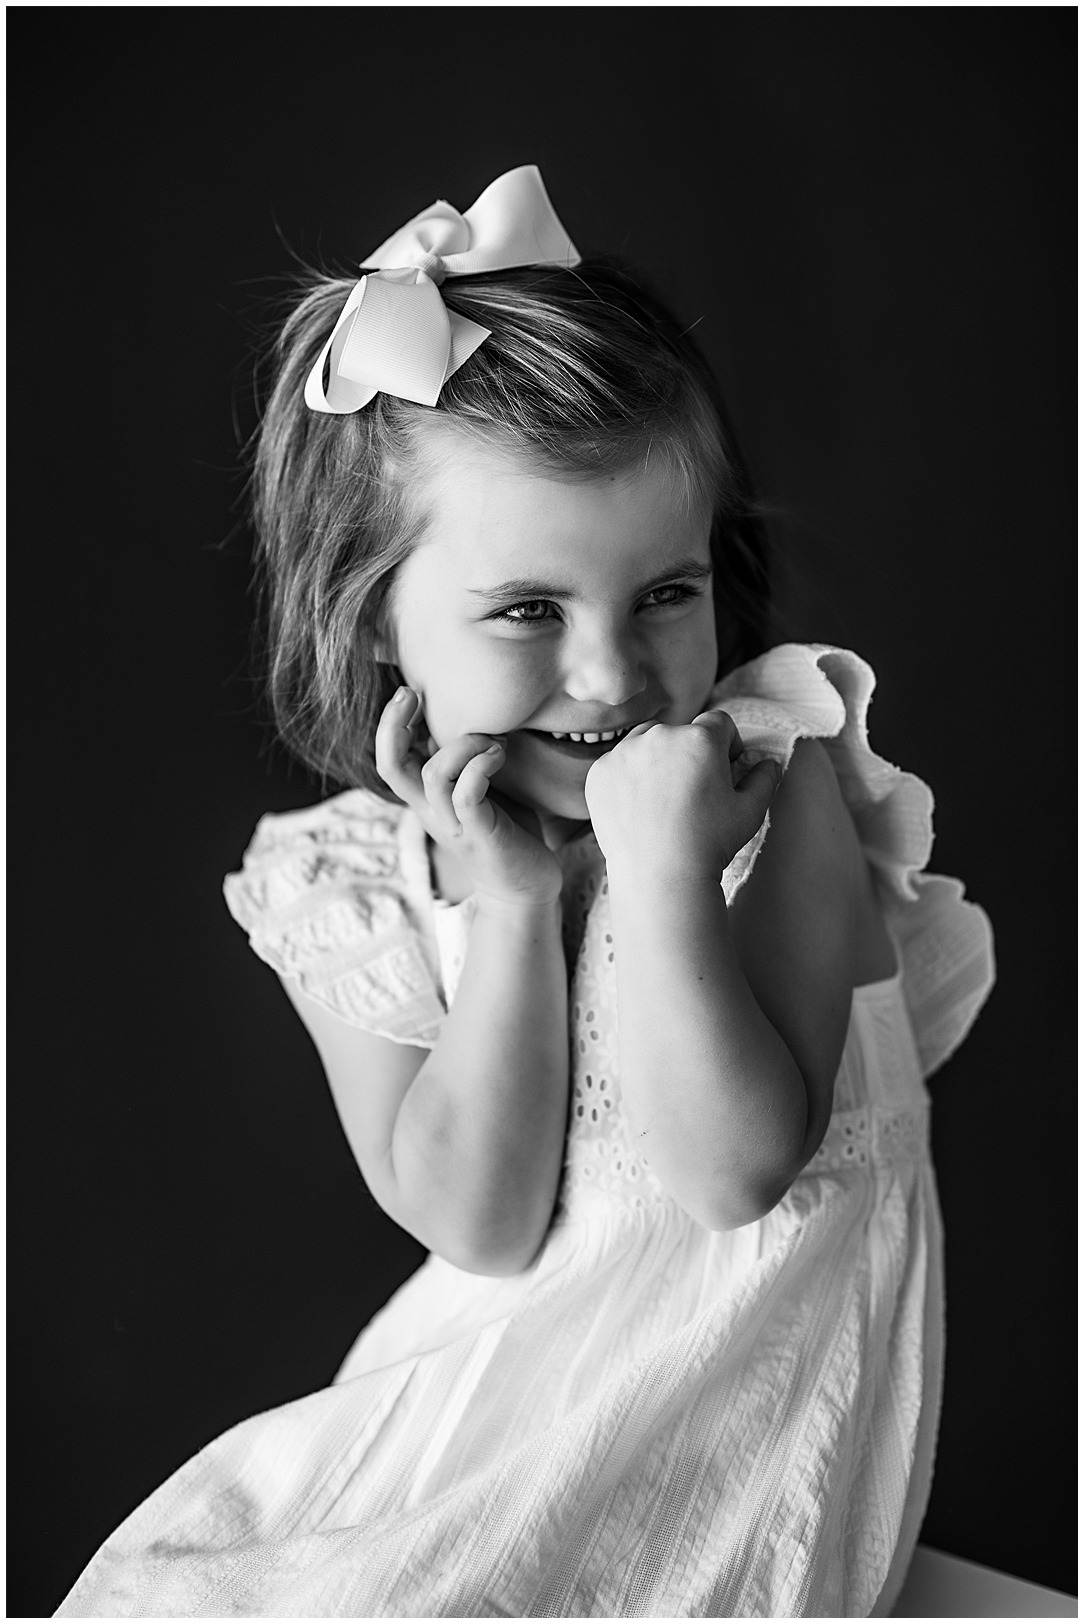 Tessa_marie_photography_atlanta_childrens_fine_art_black_and_white_photography_family_photographer_0015.jpg